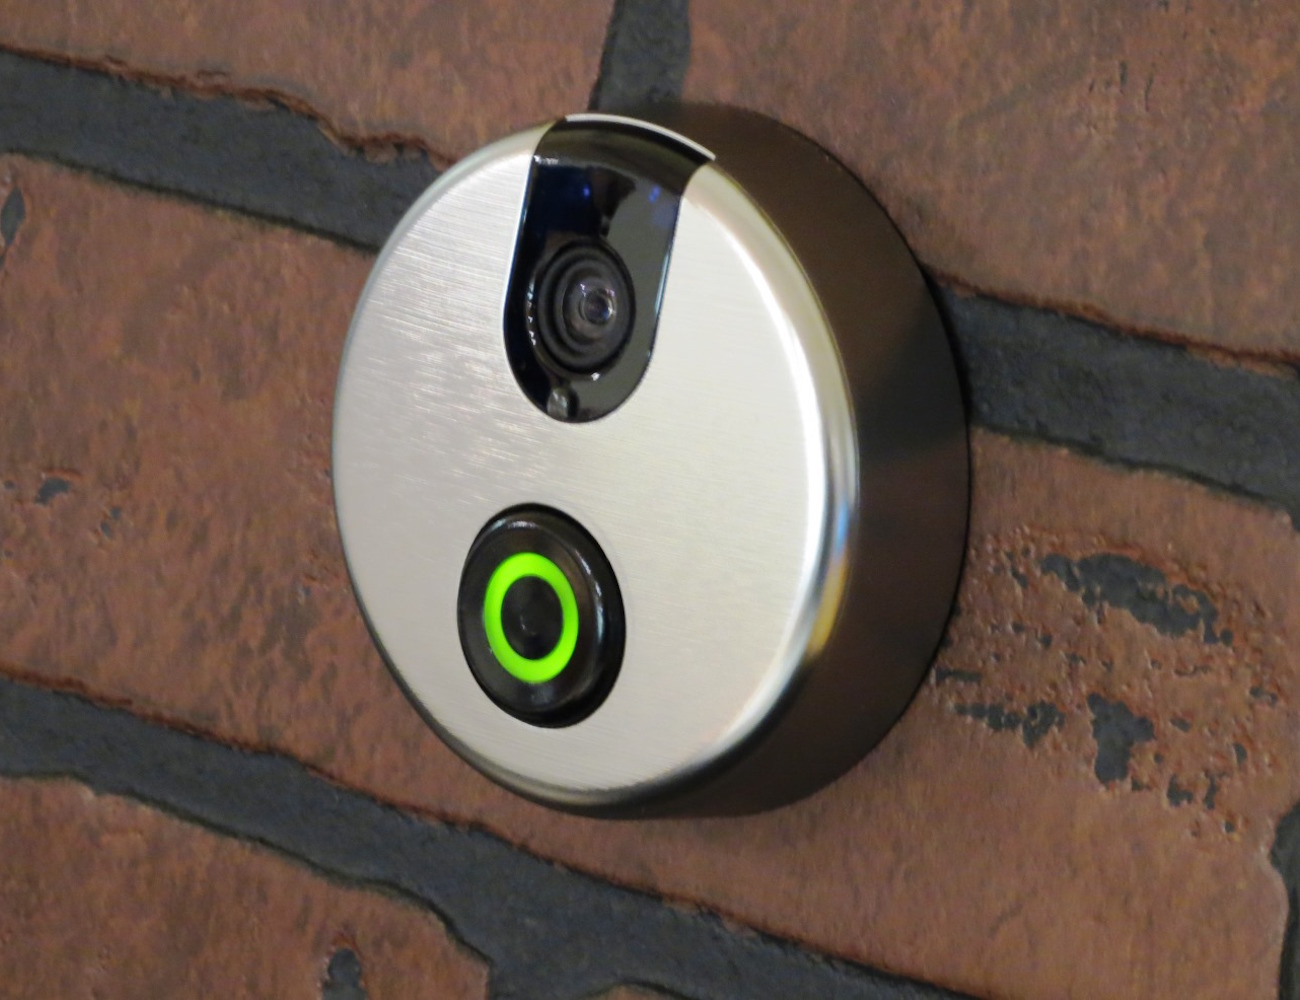 SkyBell – Wi-Fi Video Doorbell